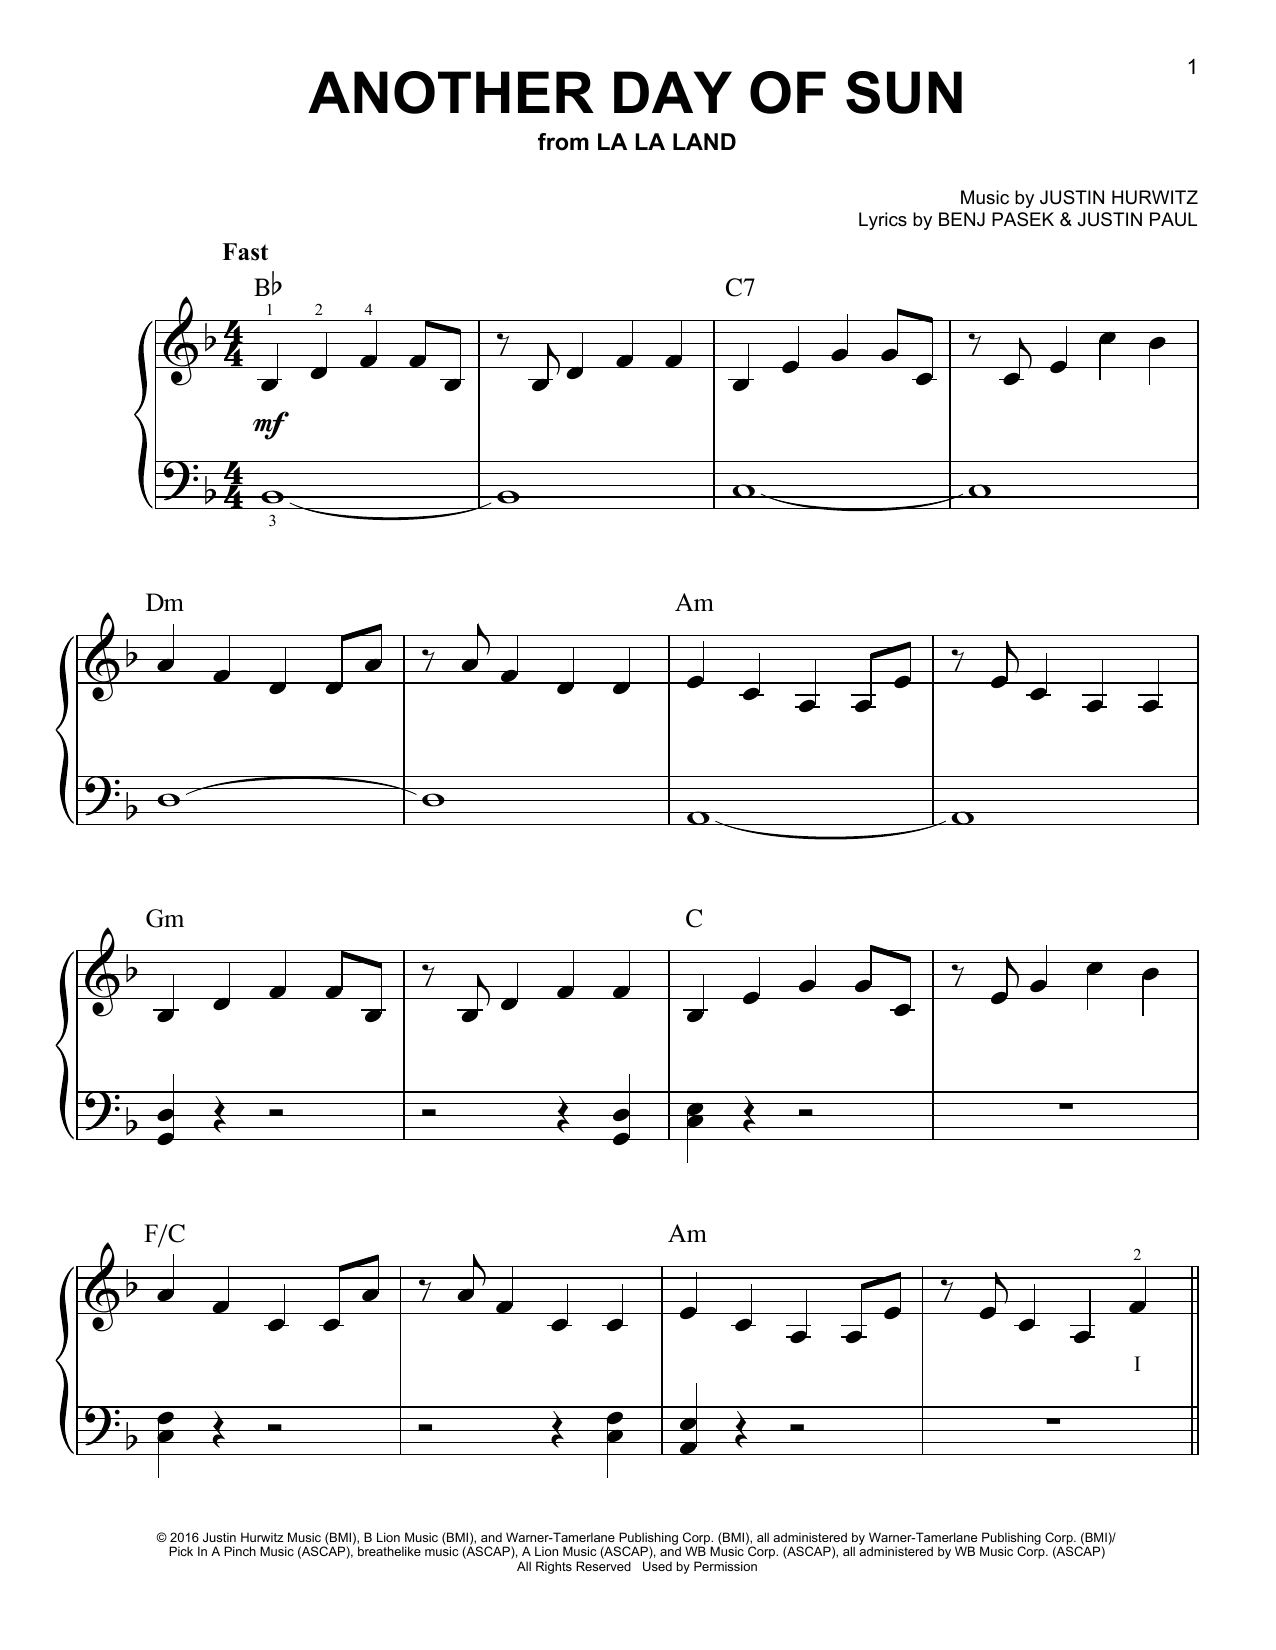 La La Land Cast Another Day Of Sun From La La Land Sheet Music Download Pdf Score 179164